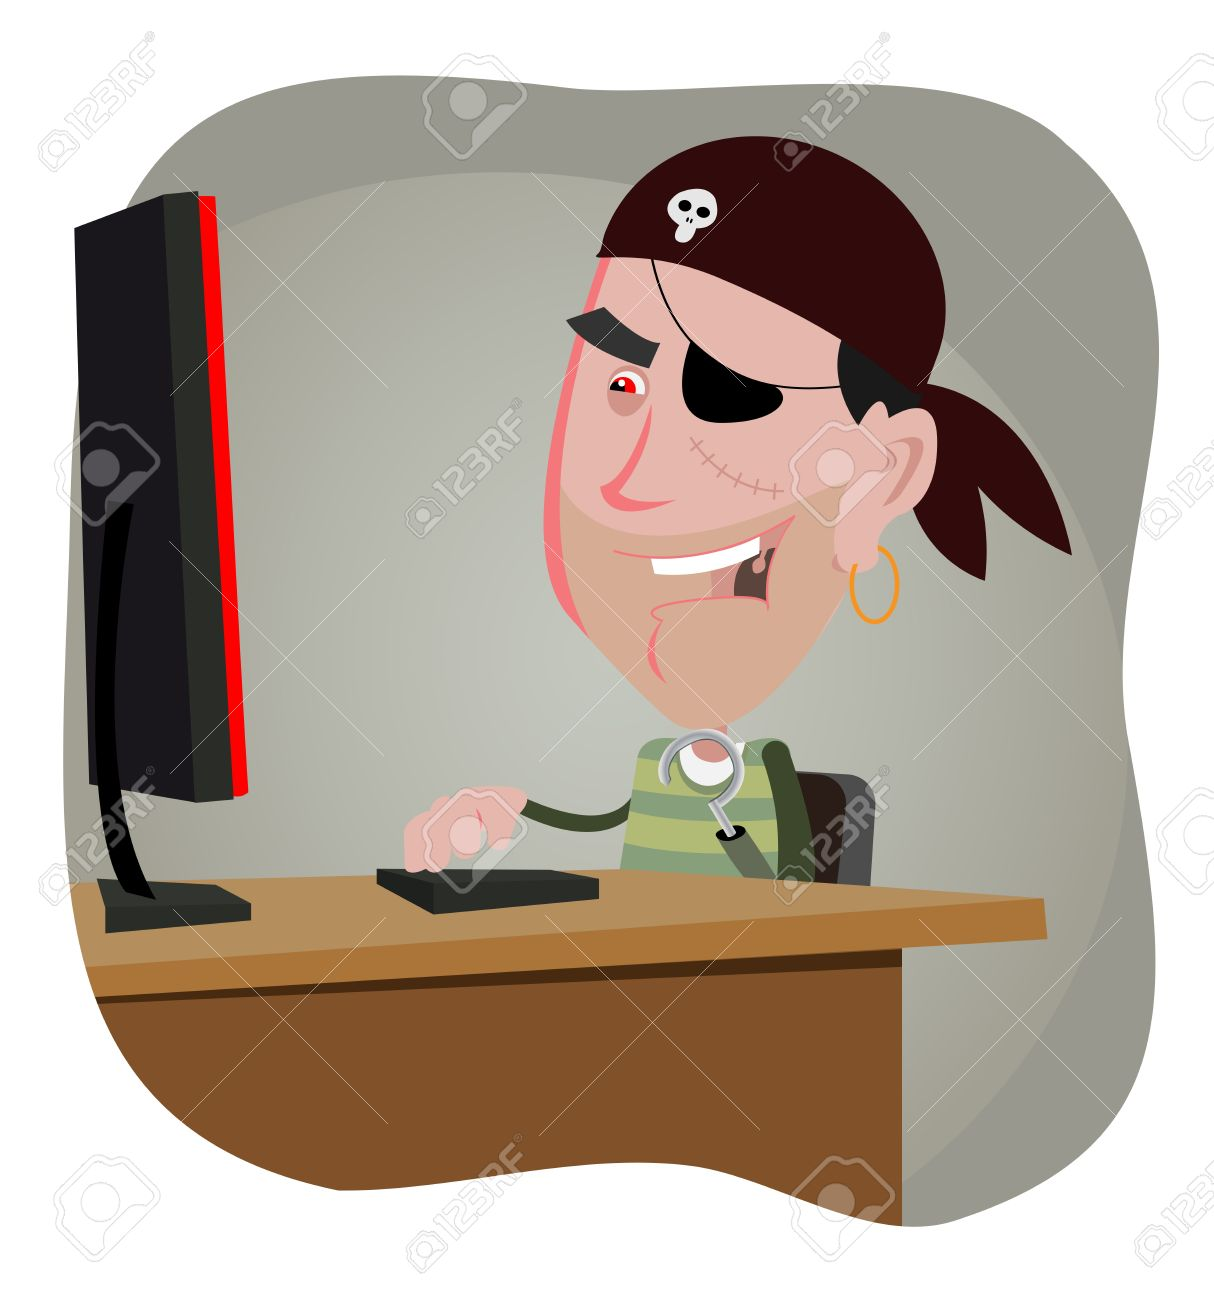 Illustration of a cartoon computer pirate hacker Stock Vector - 11248672